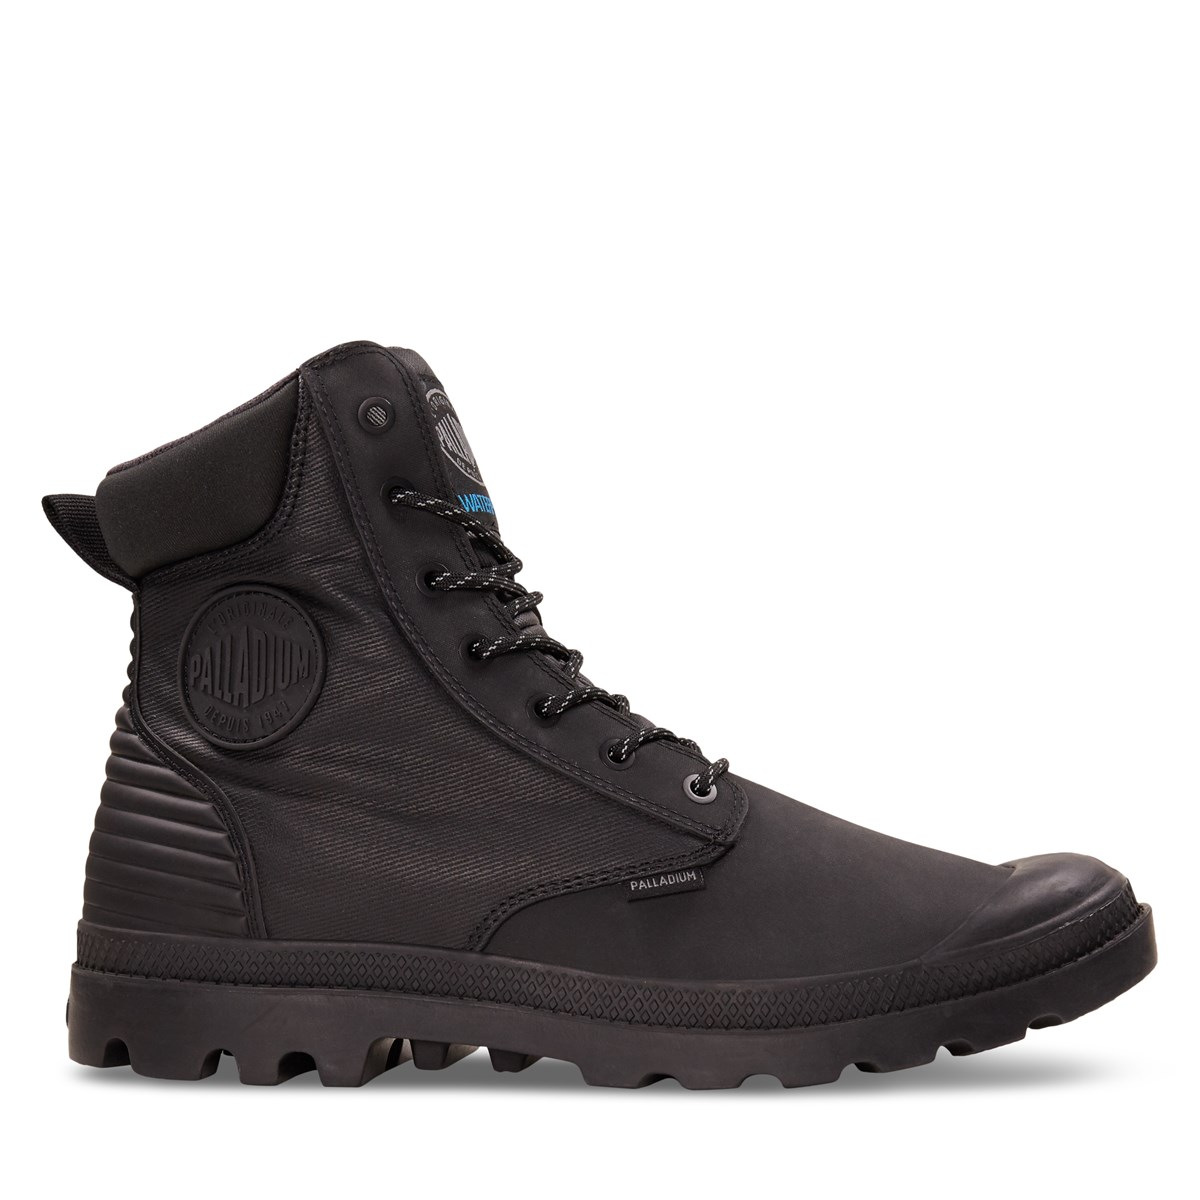 Men's Pampa SC Shadow WPR Boots in Black